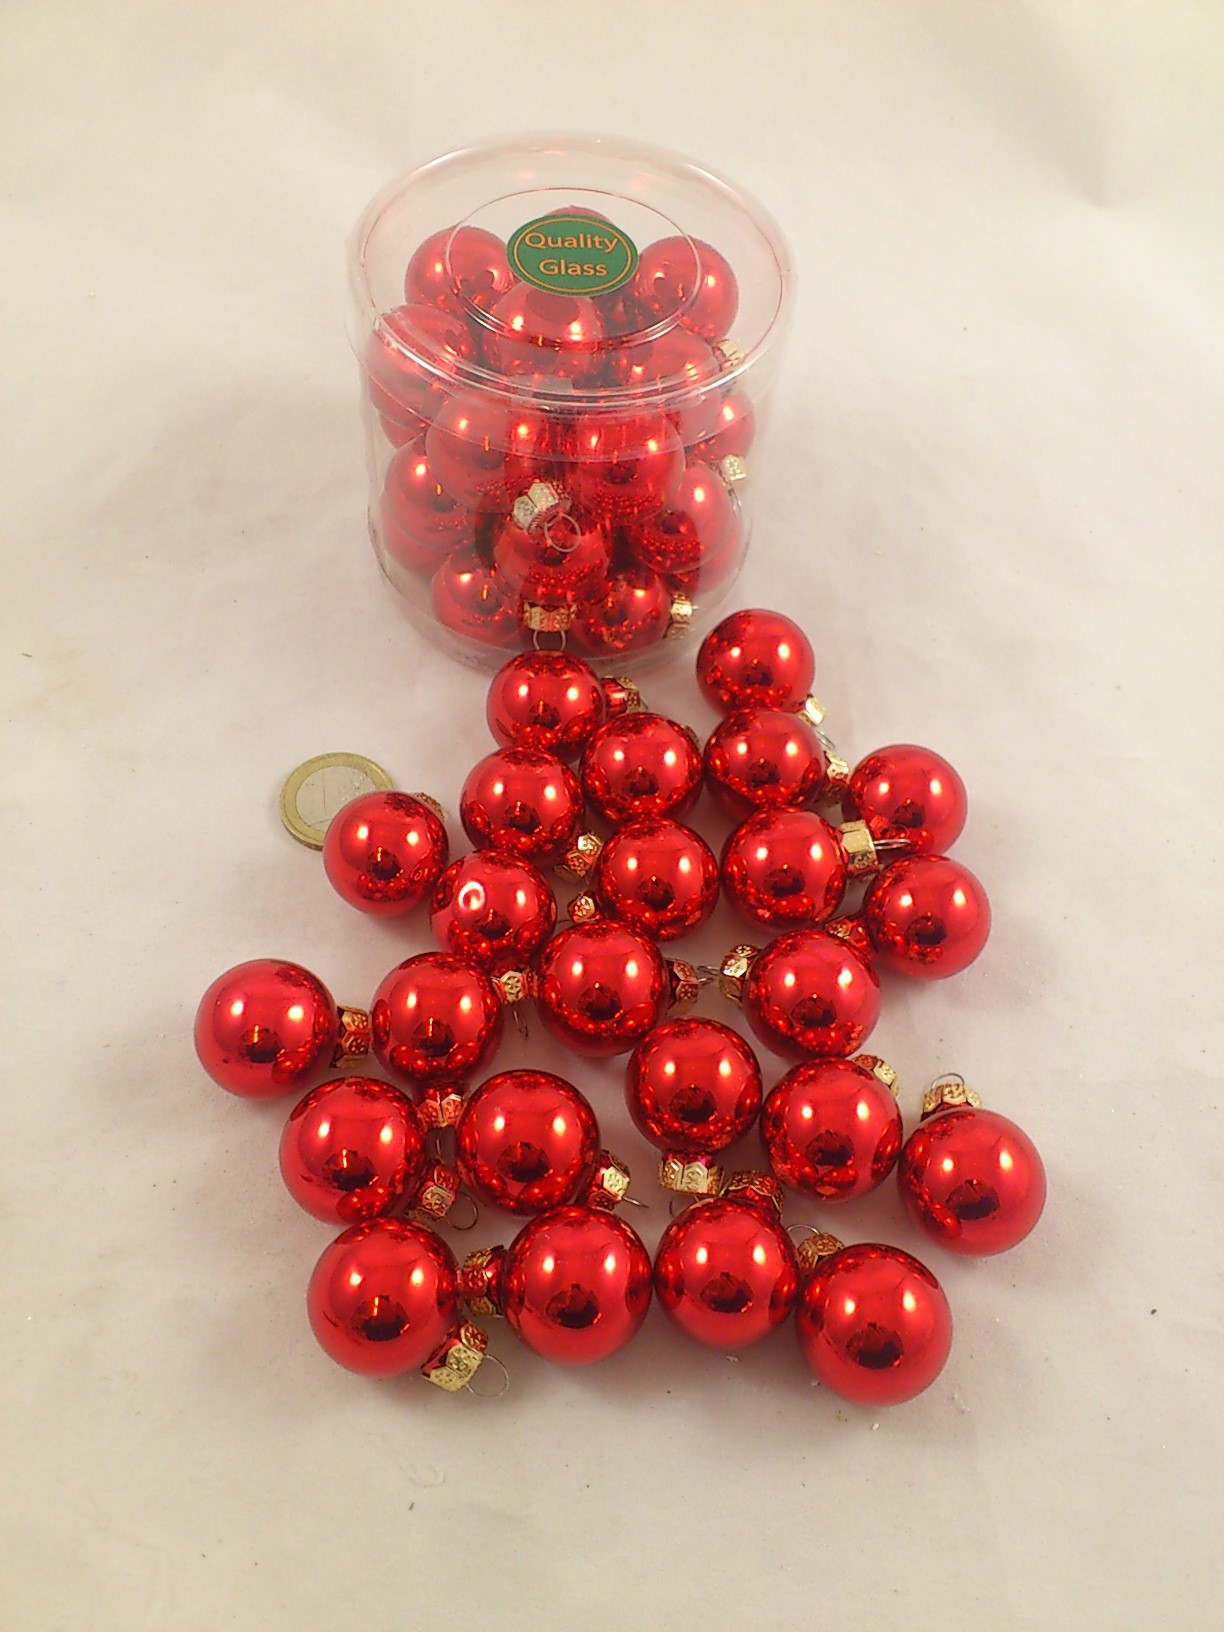 Christmas balls in glass 25 mm 24 pcs. red shiny